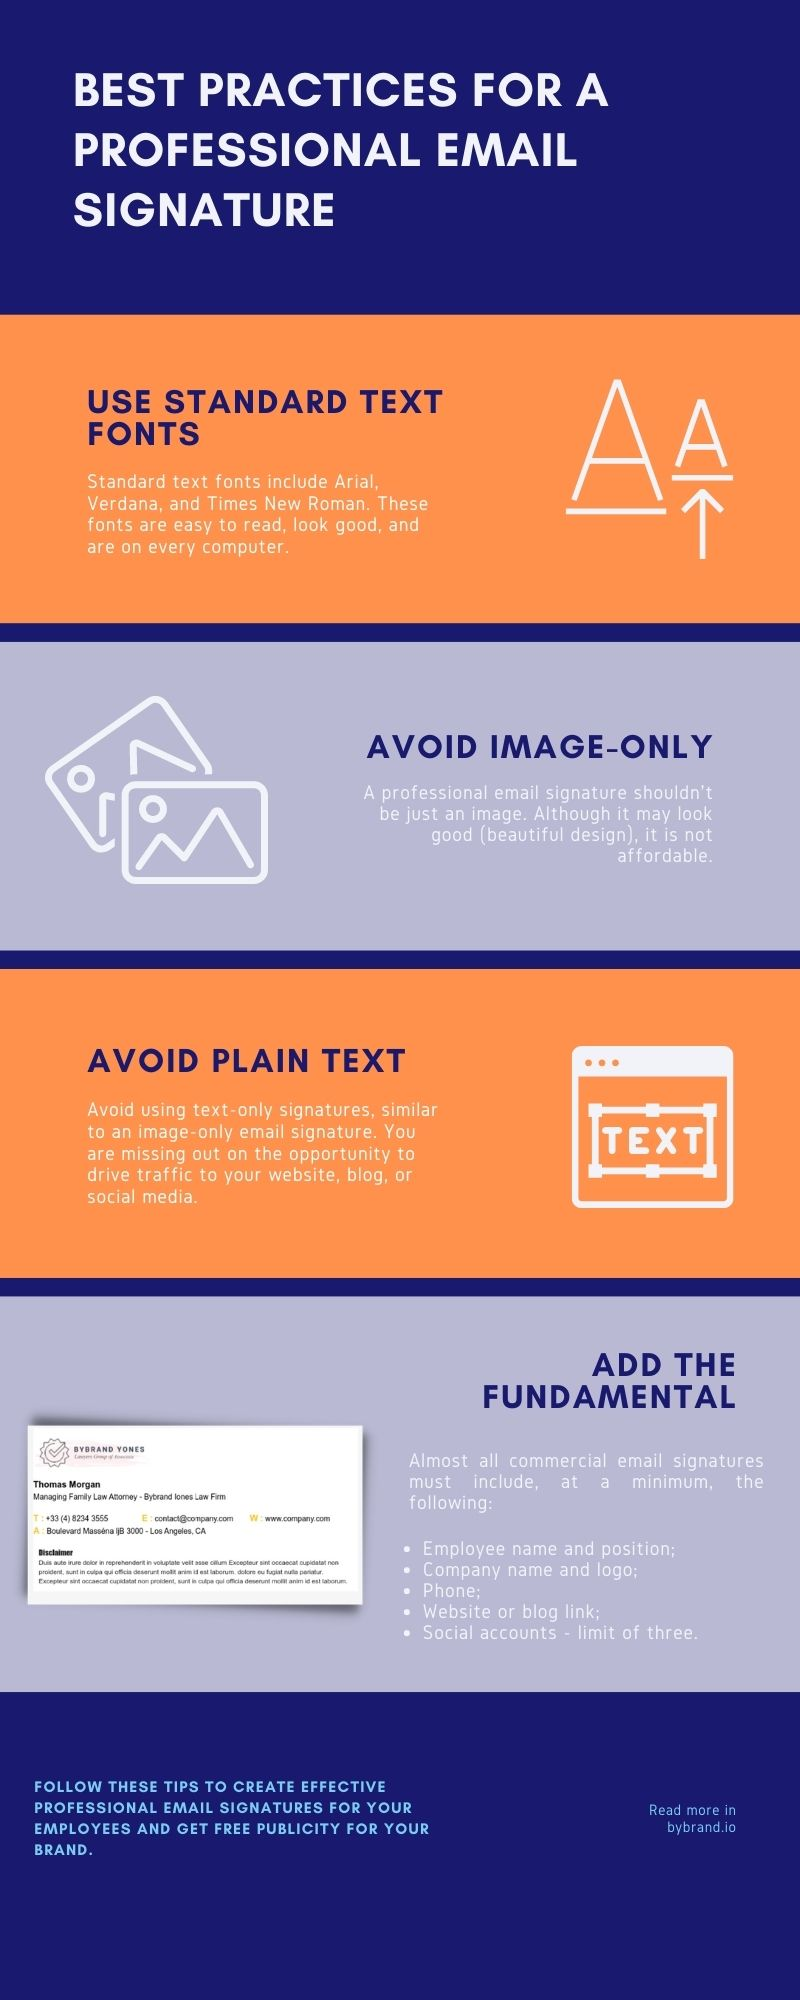 Infographic the best practices for a frofessional email signature